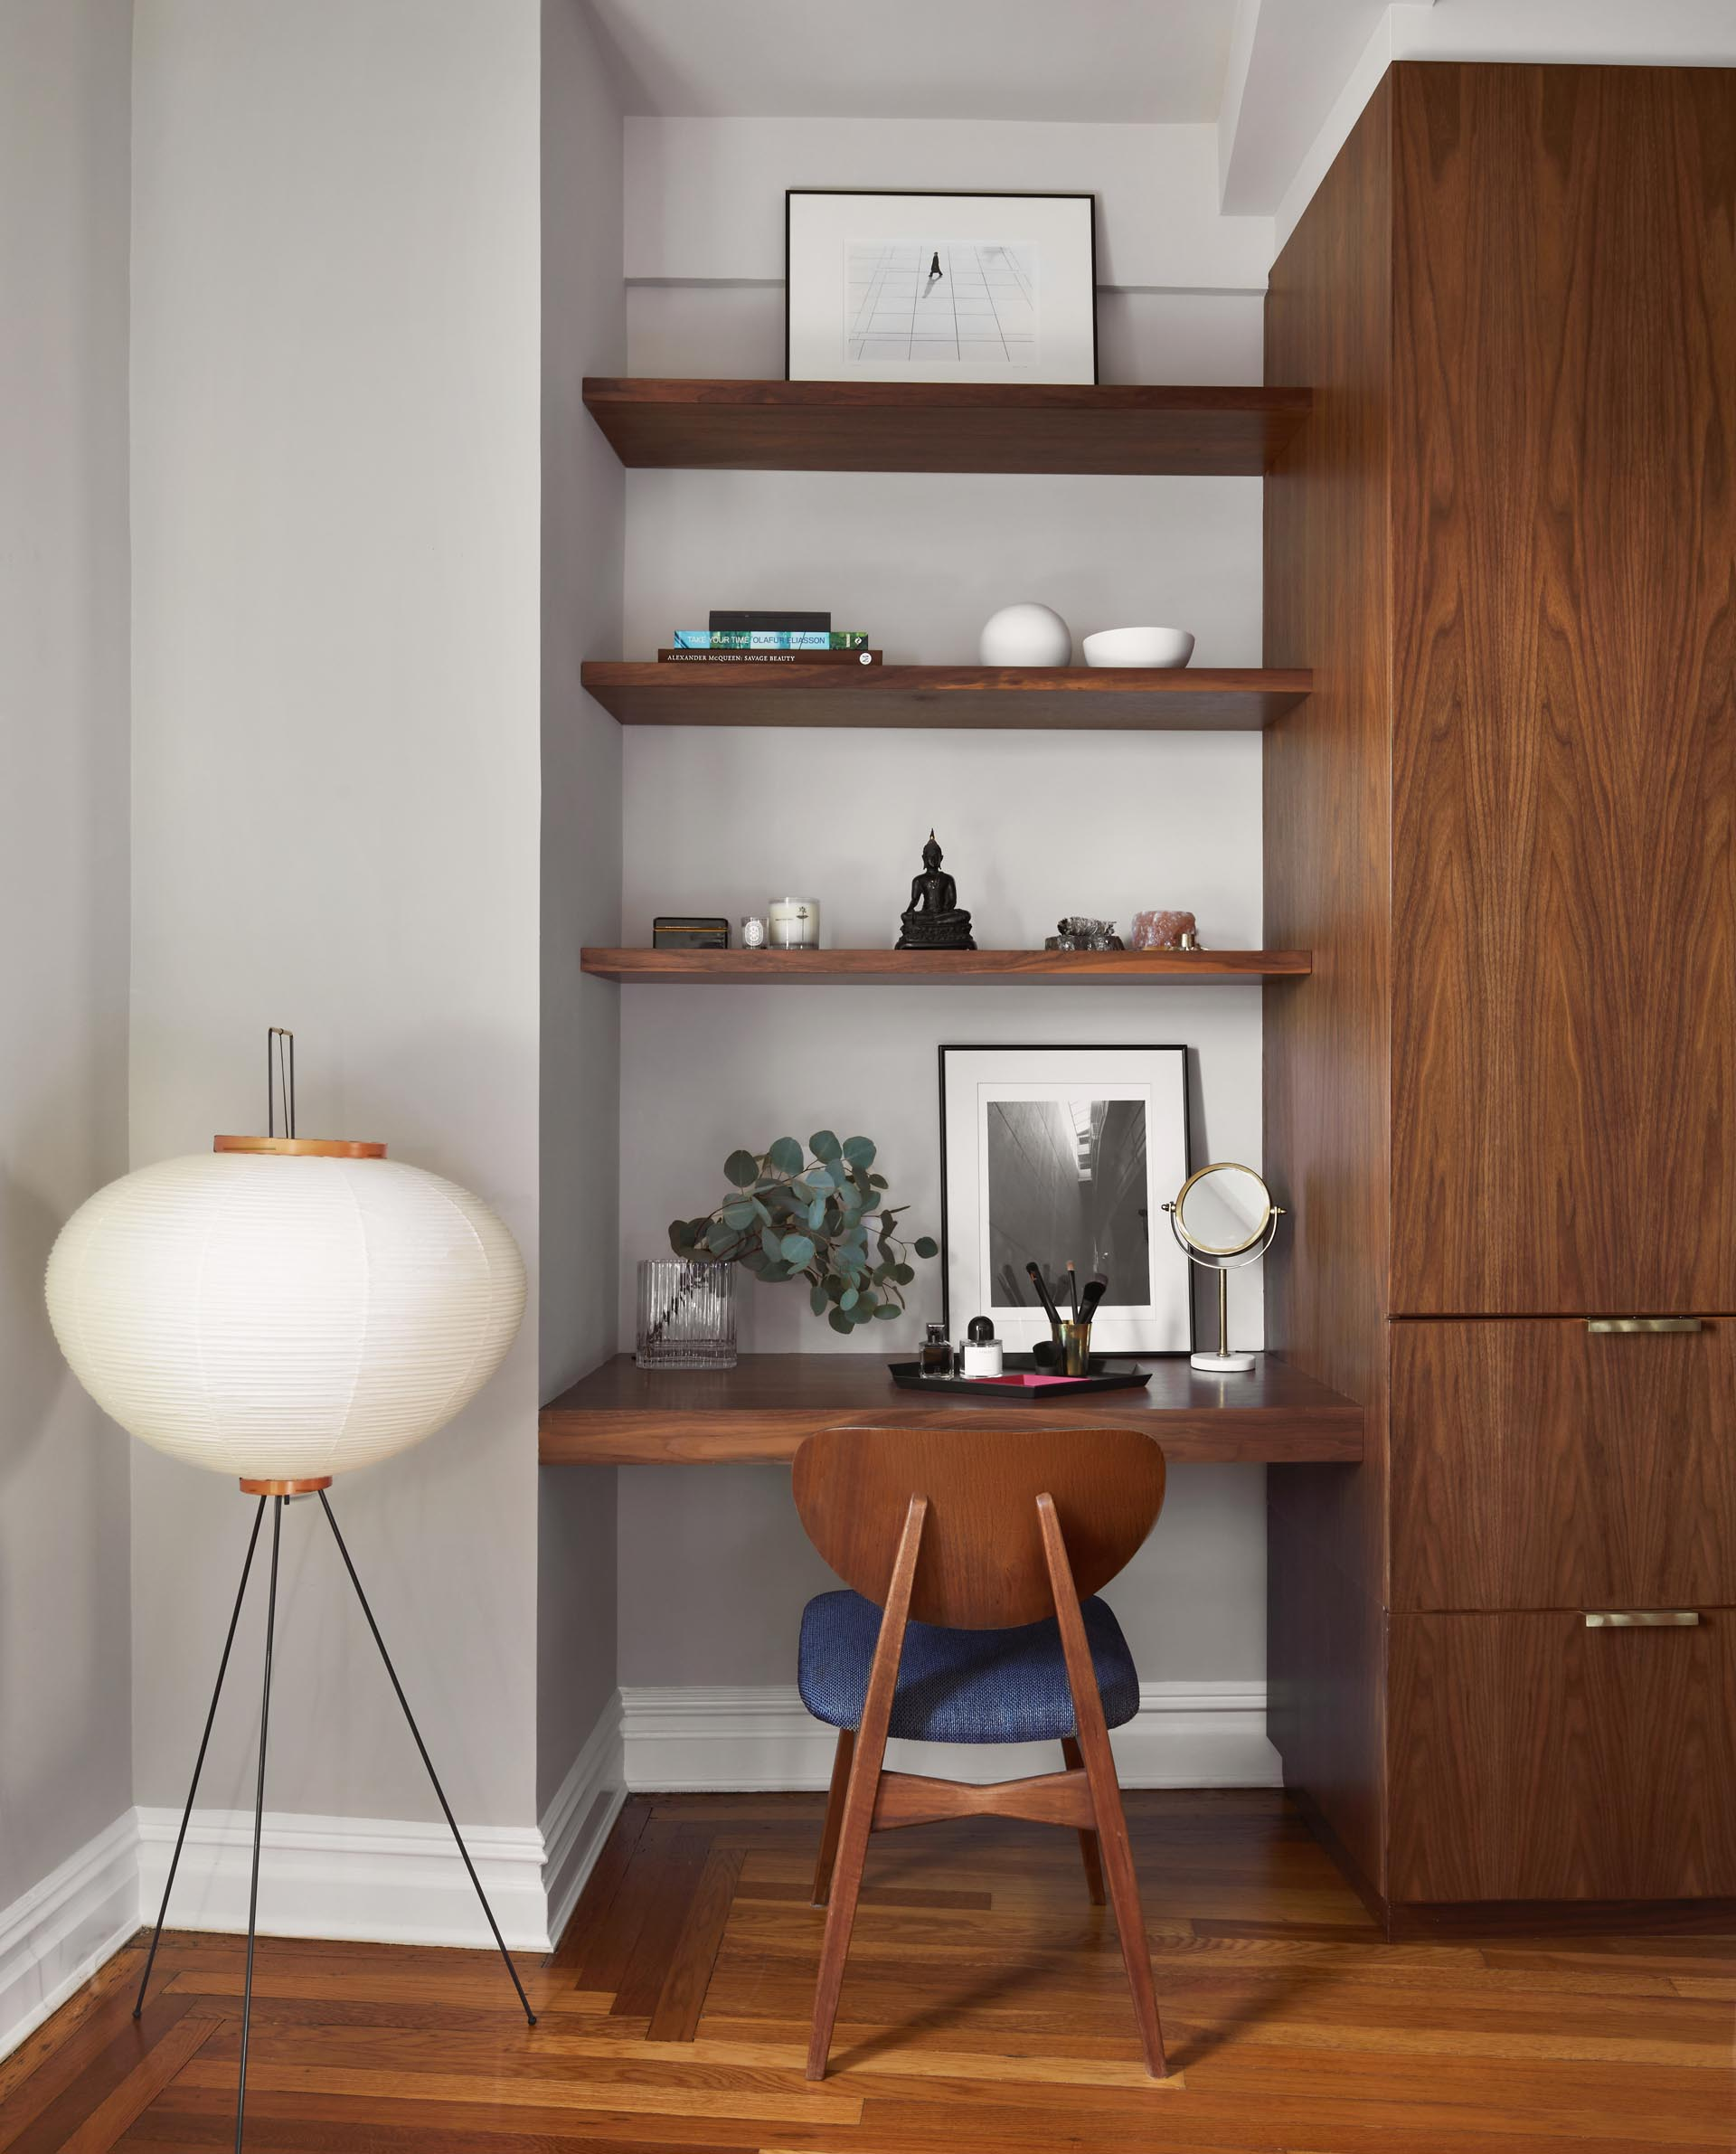 A custom-designed vanity / desk that matches the wood cabinets and shelving.